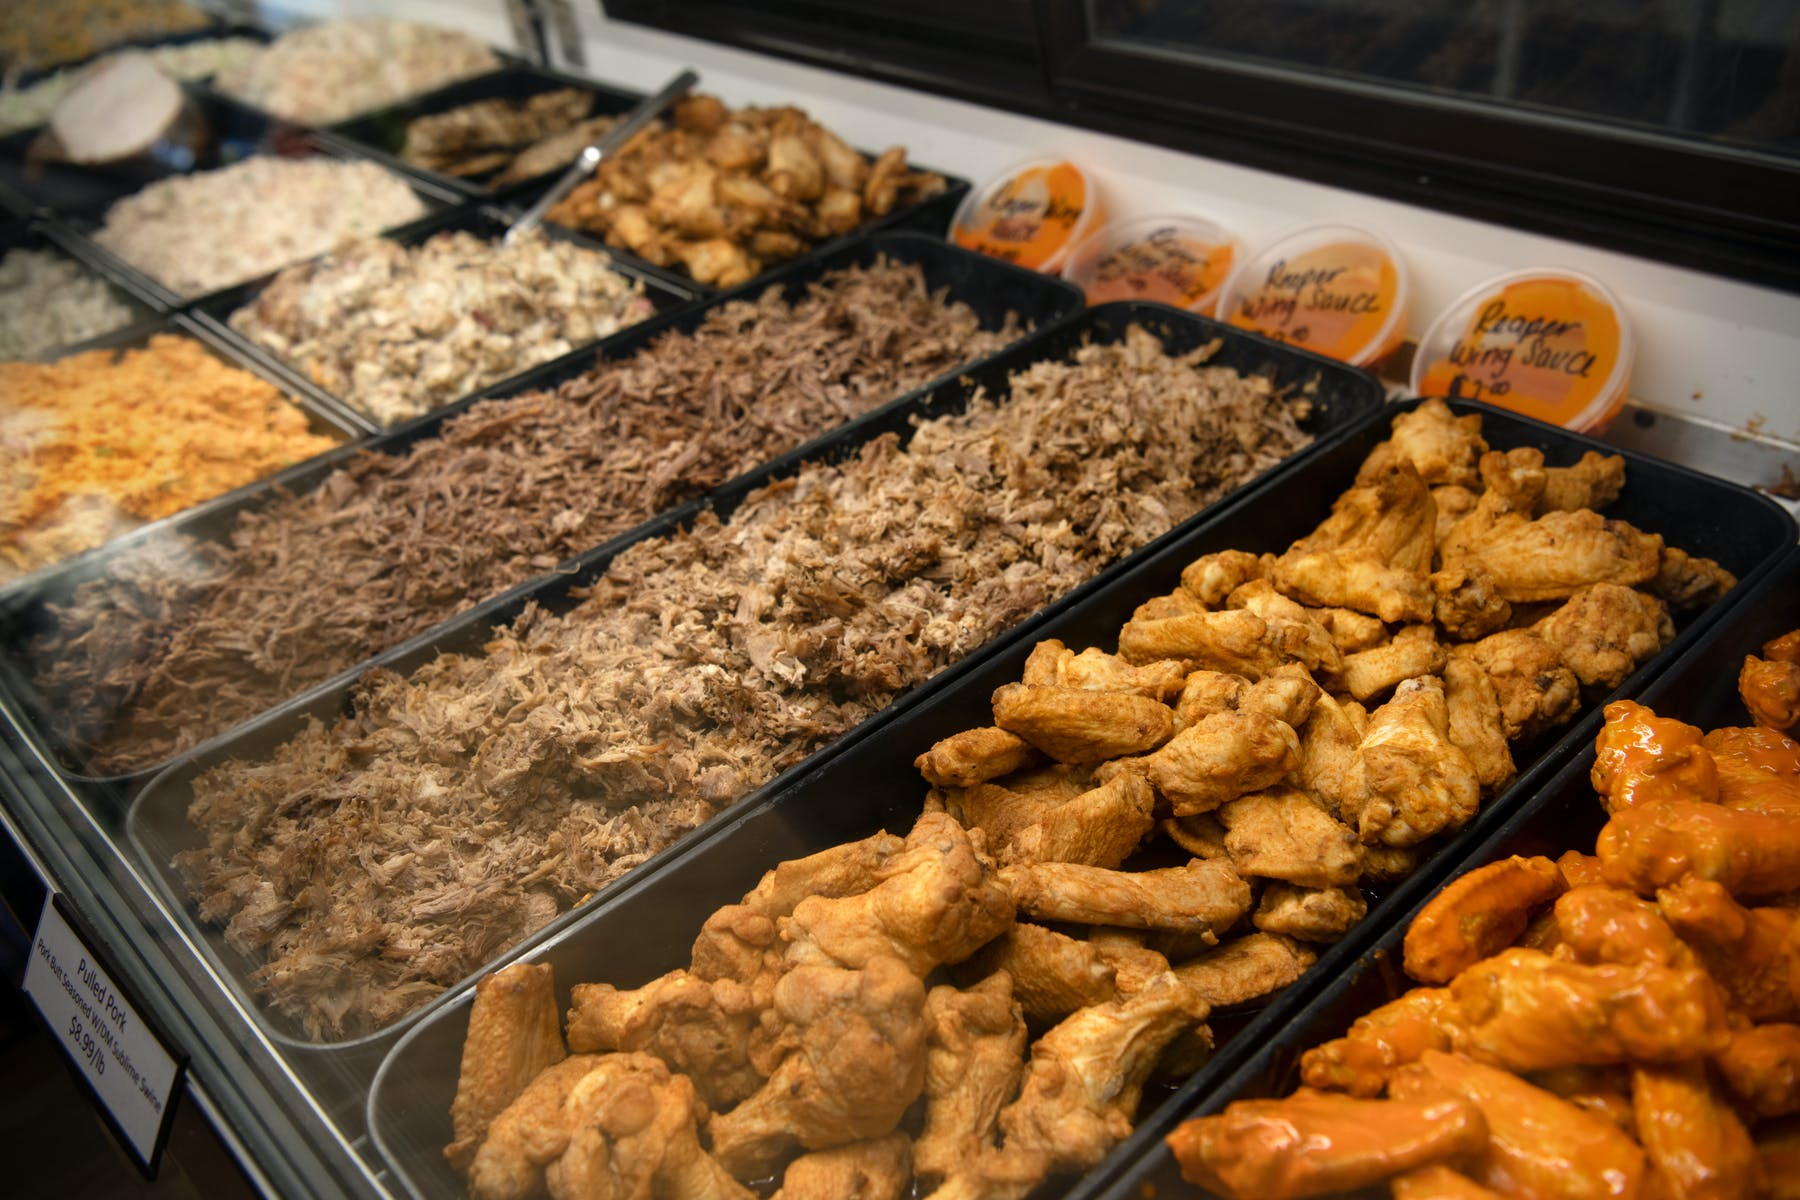 A variety of meat supplied by catering provider The Great East Butcher in Portland, ME